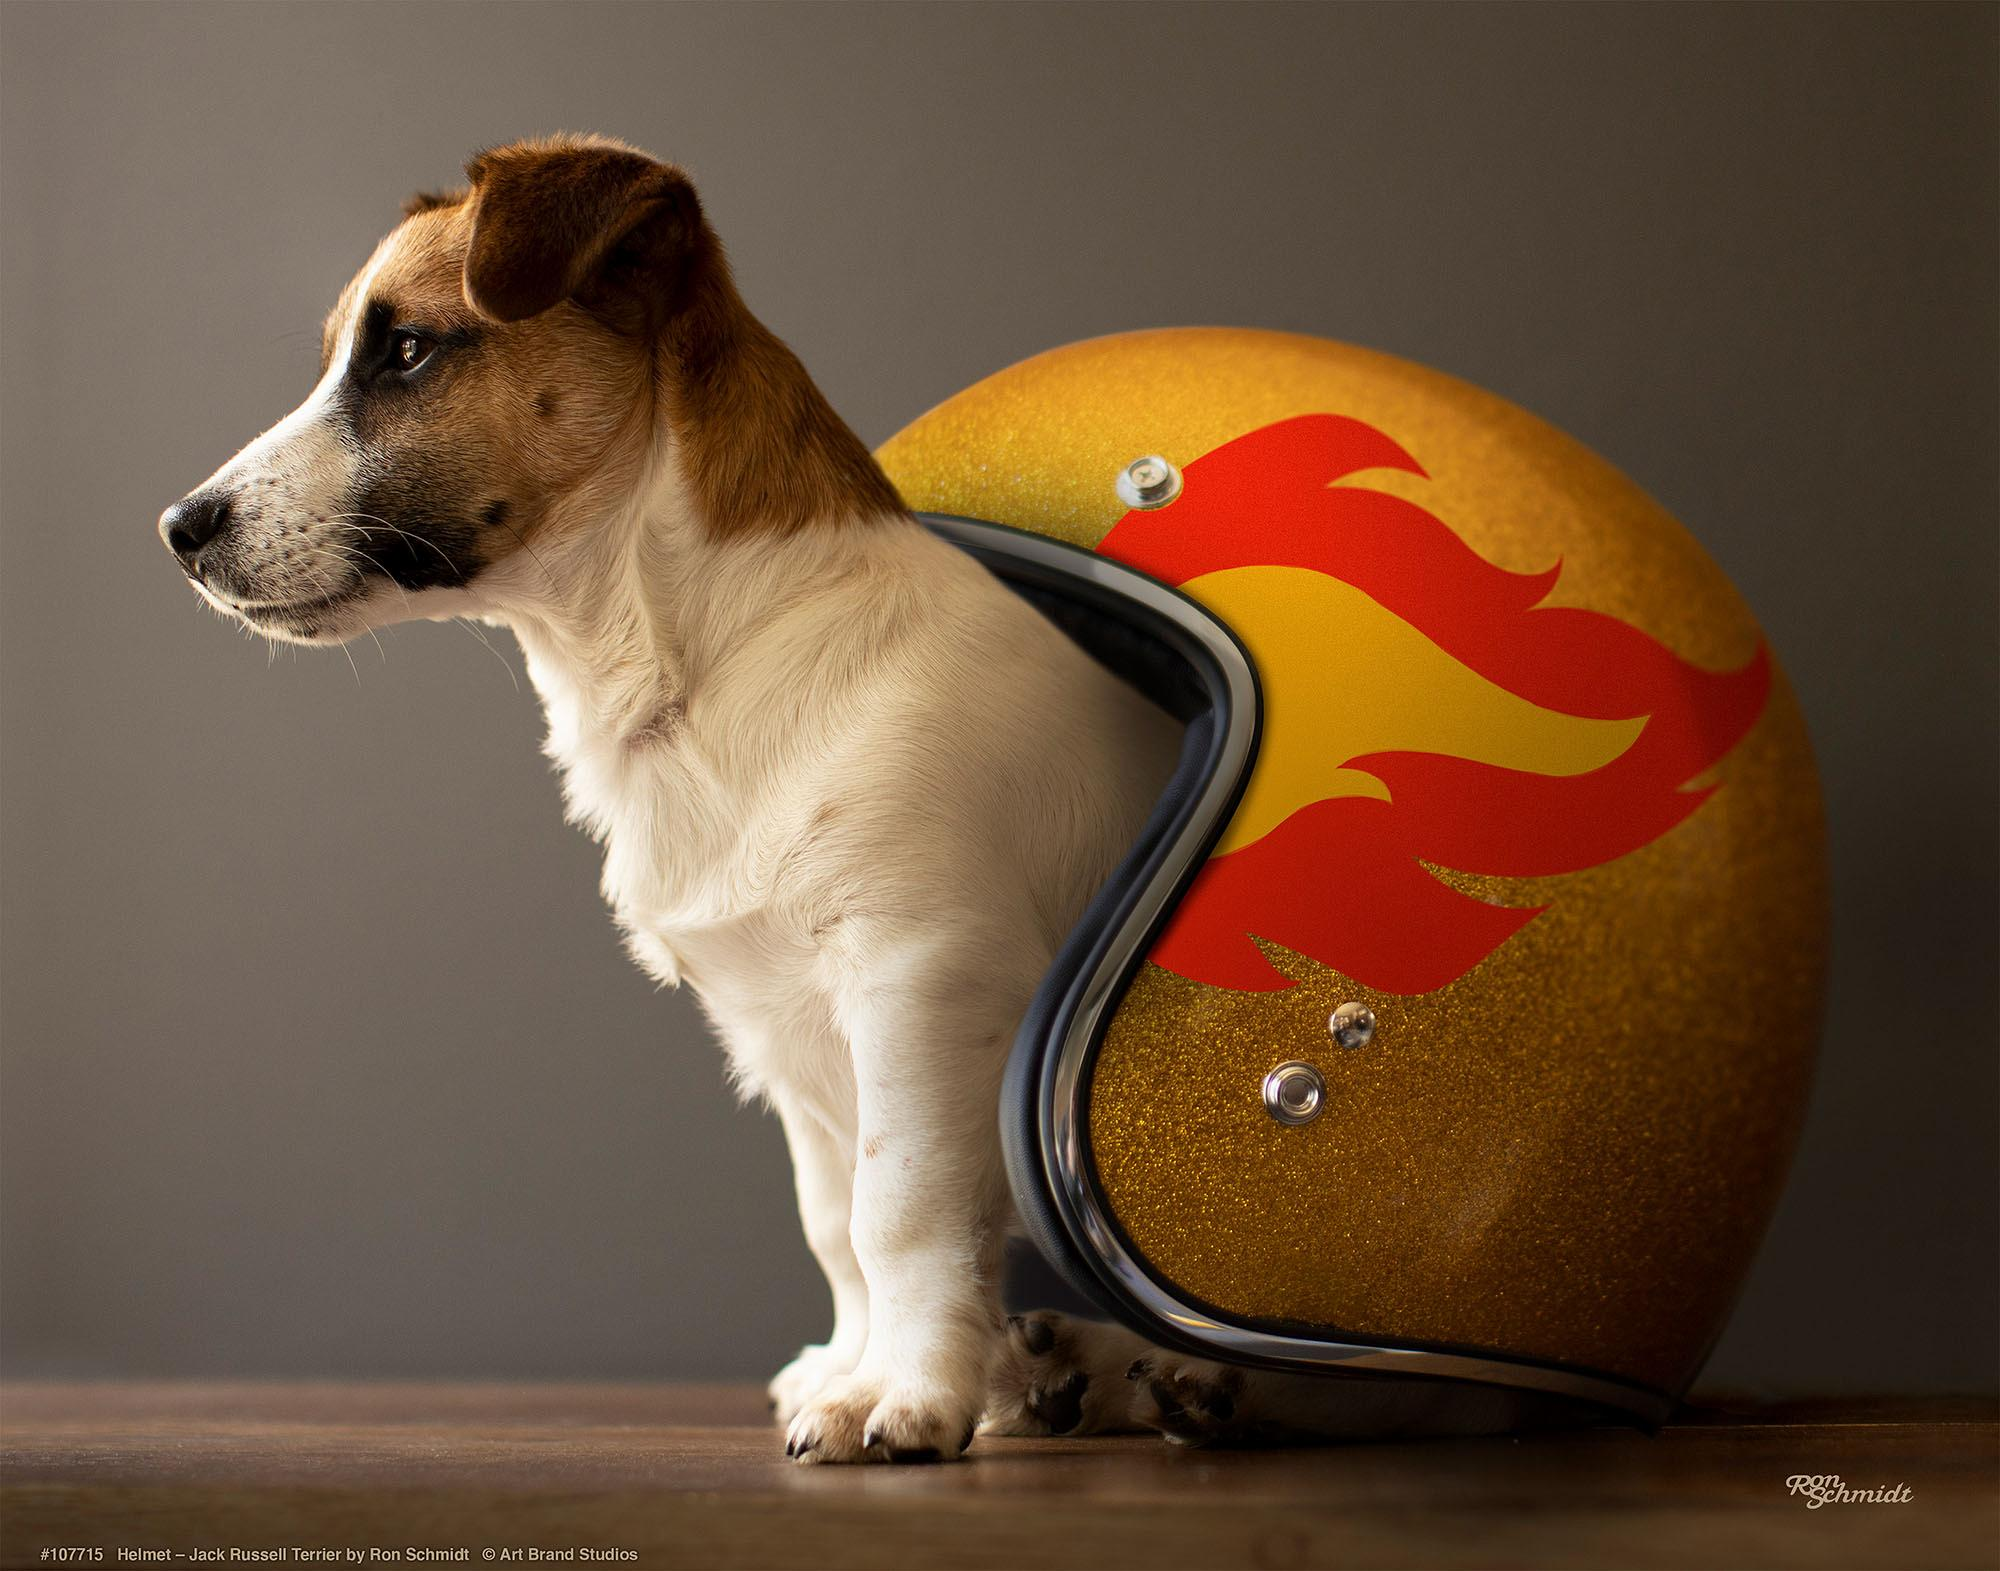 Helmet-Jack Russell Terrier Art Collection